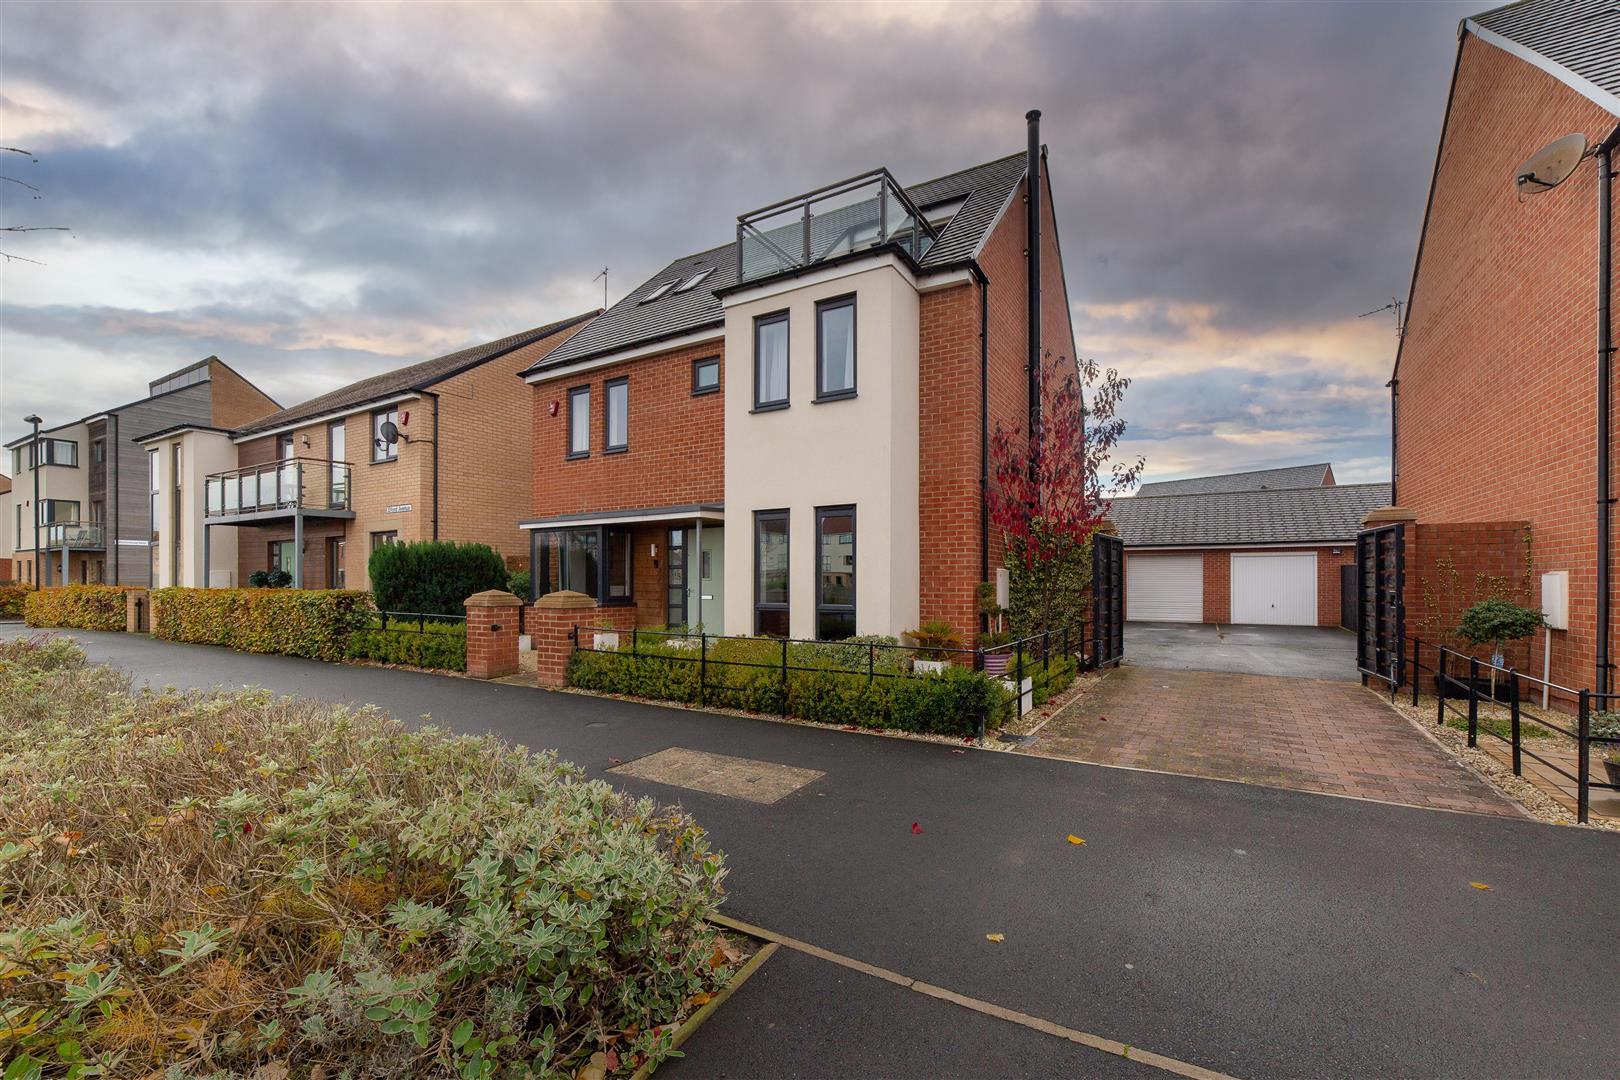 5 bed detached house for sale in Newcastle Upon Tyne, NE13 9AP  - Property Image 1